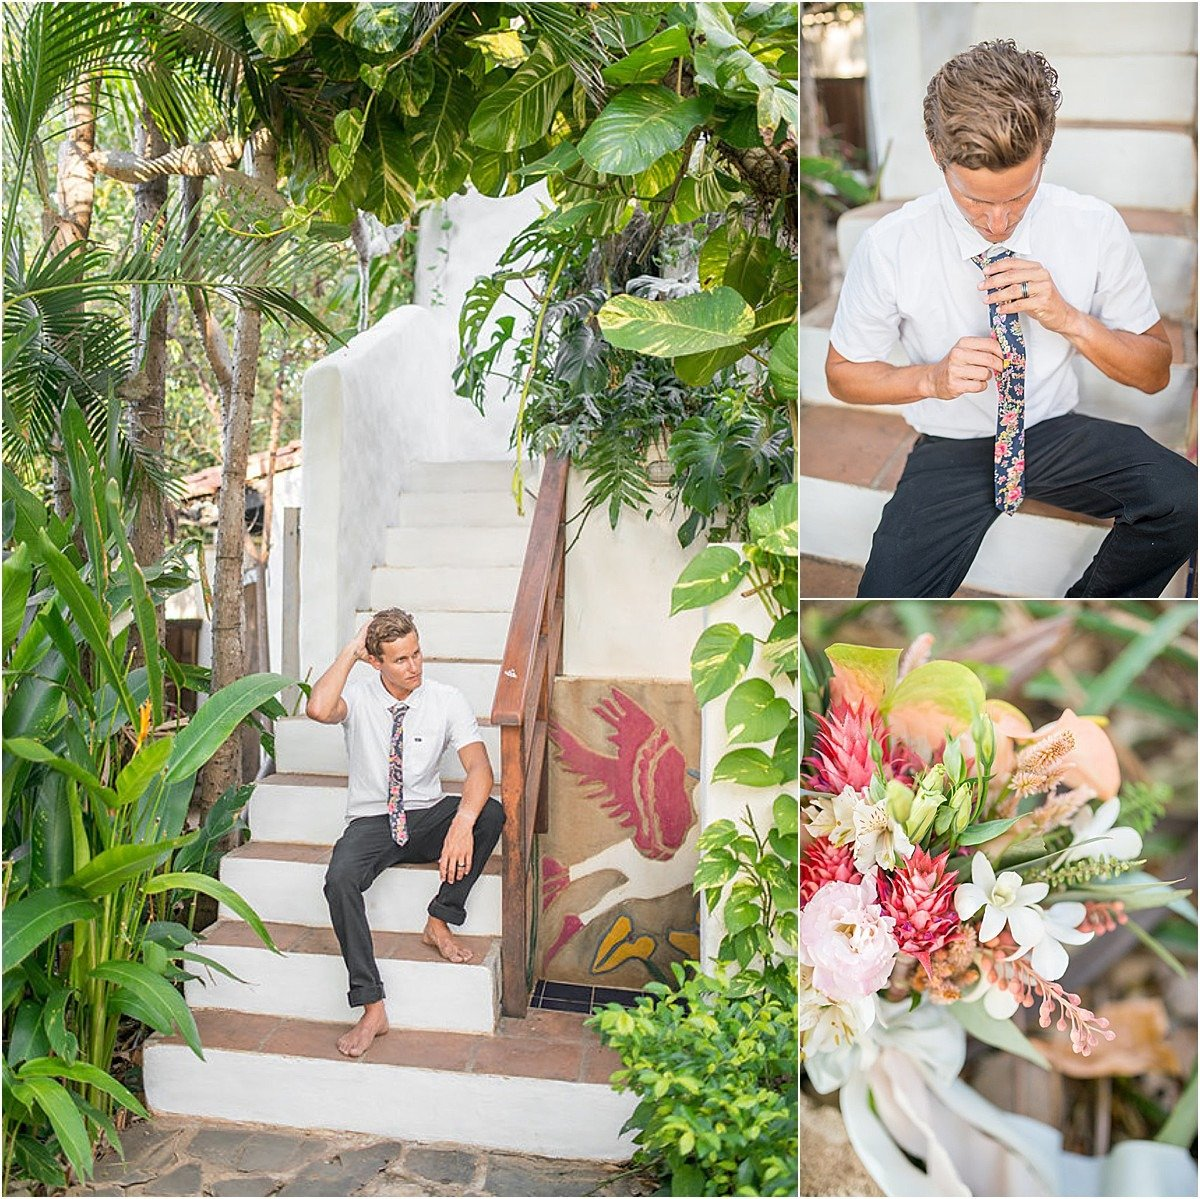 Destination elopements are popular at the moment and it's no surprise why